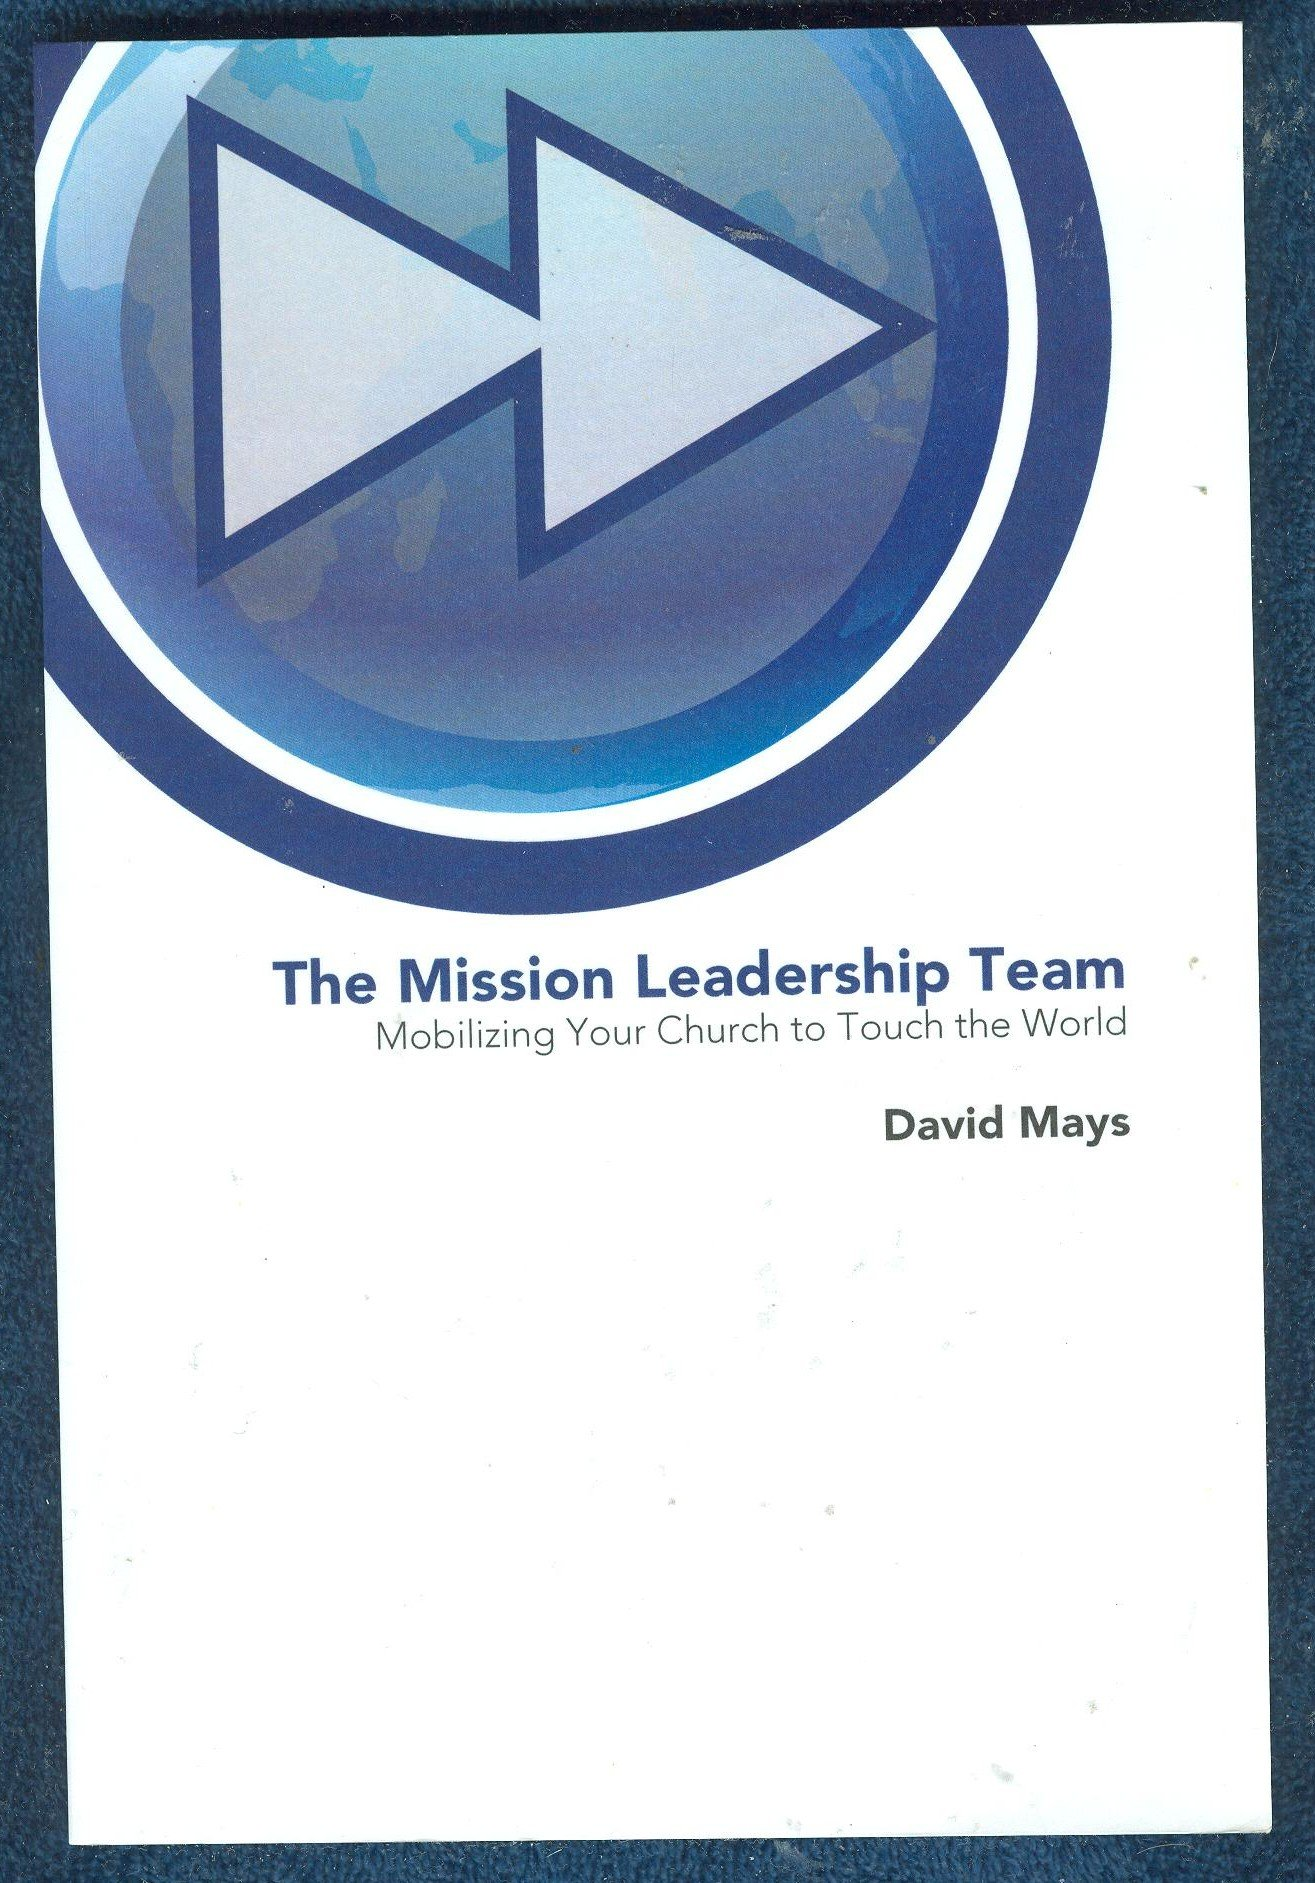 Download The Mission Leadership Team (Mobilizing Your Church to Touch the World) ebook